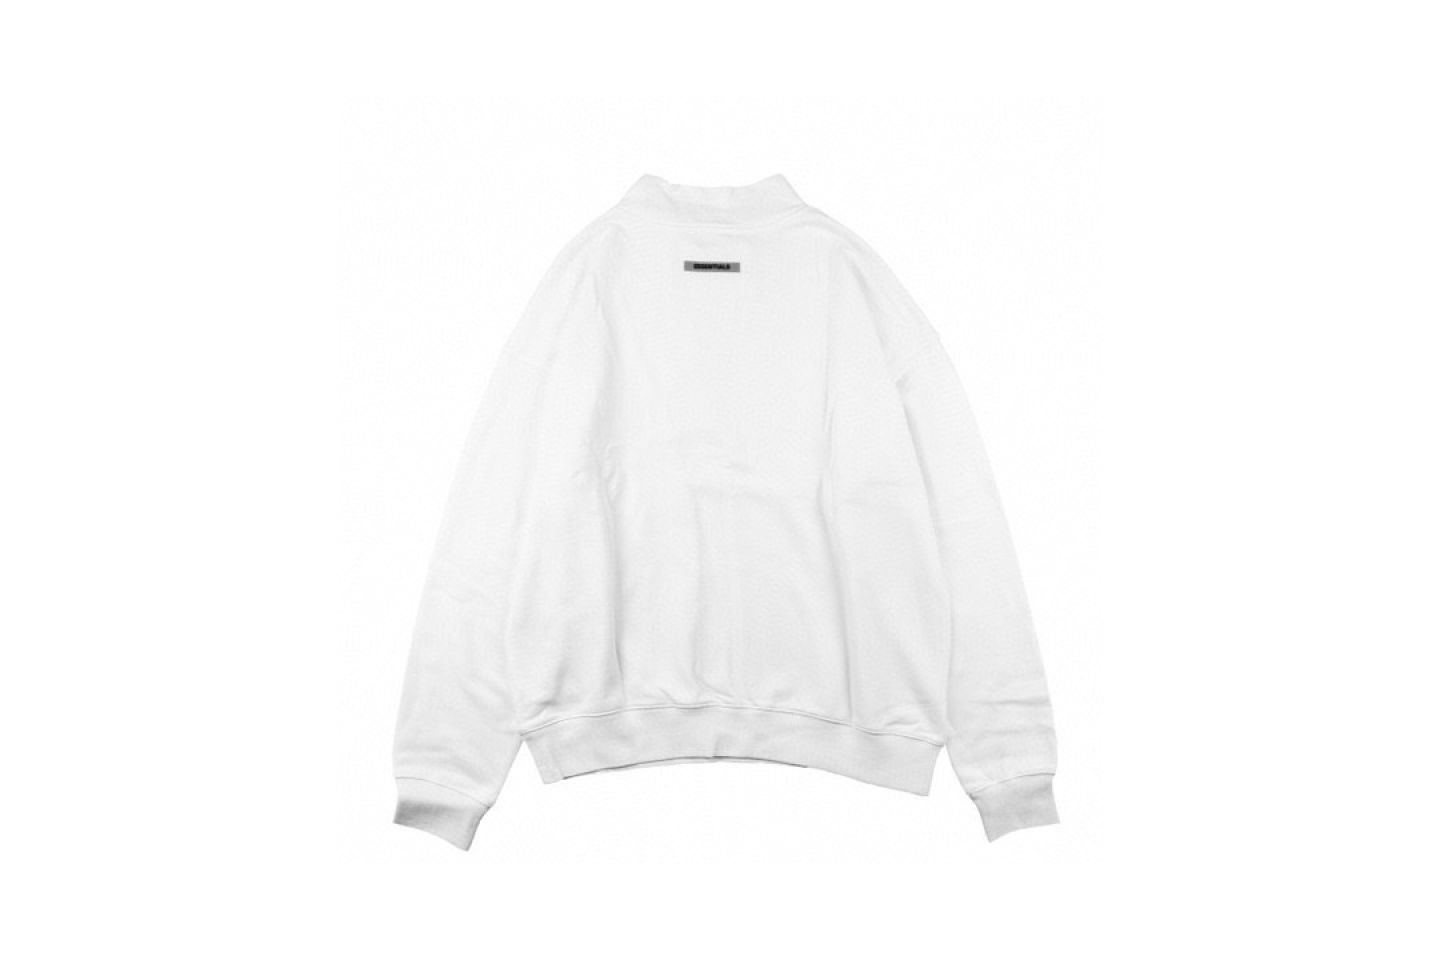 """Shirt Fear Of God double line letter reflective half high collar sweater """"White"""" 5 fear_of_god_double_line_letter_reflective_half_high_collar_sweater_white_5"""